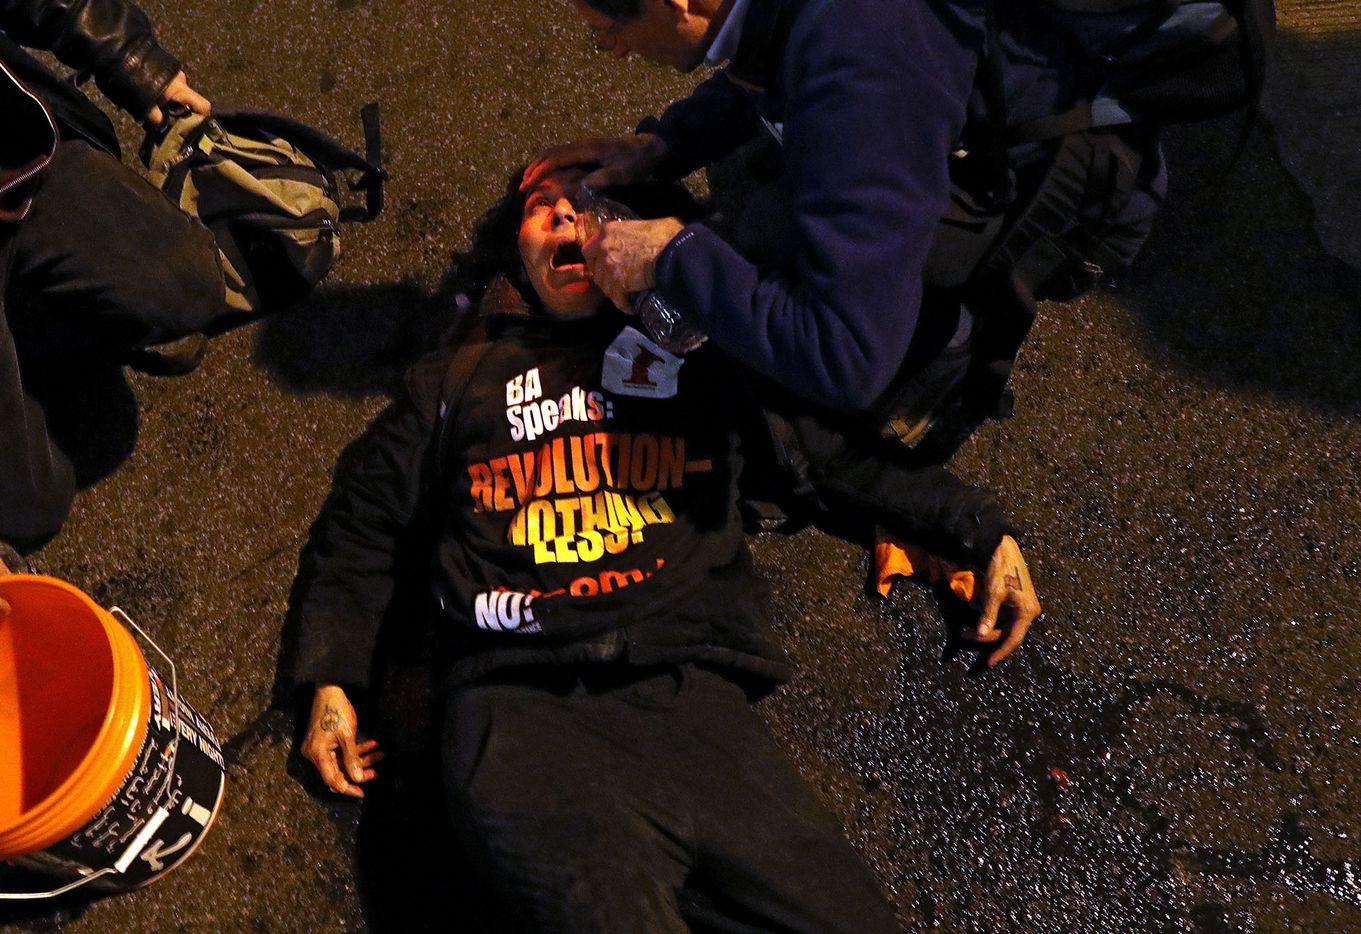 A protester has her eyes doused with water after allegedly being pepper sprayed by police outside of the Deplora Ball at the National Press Building on January 19, 2017 in Washington, DC. Donald Trump will be sworn in as the nation's 45th President on January 20th.